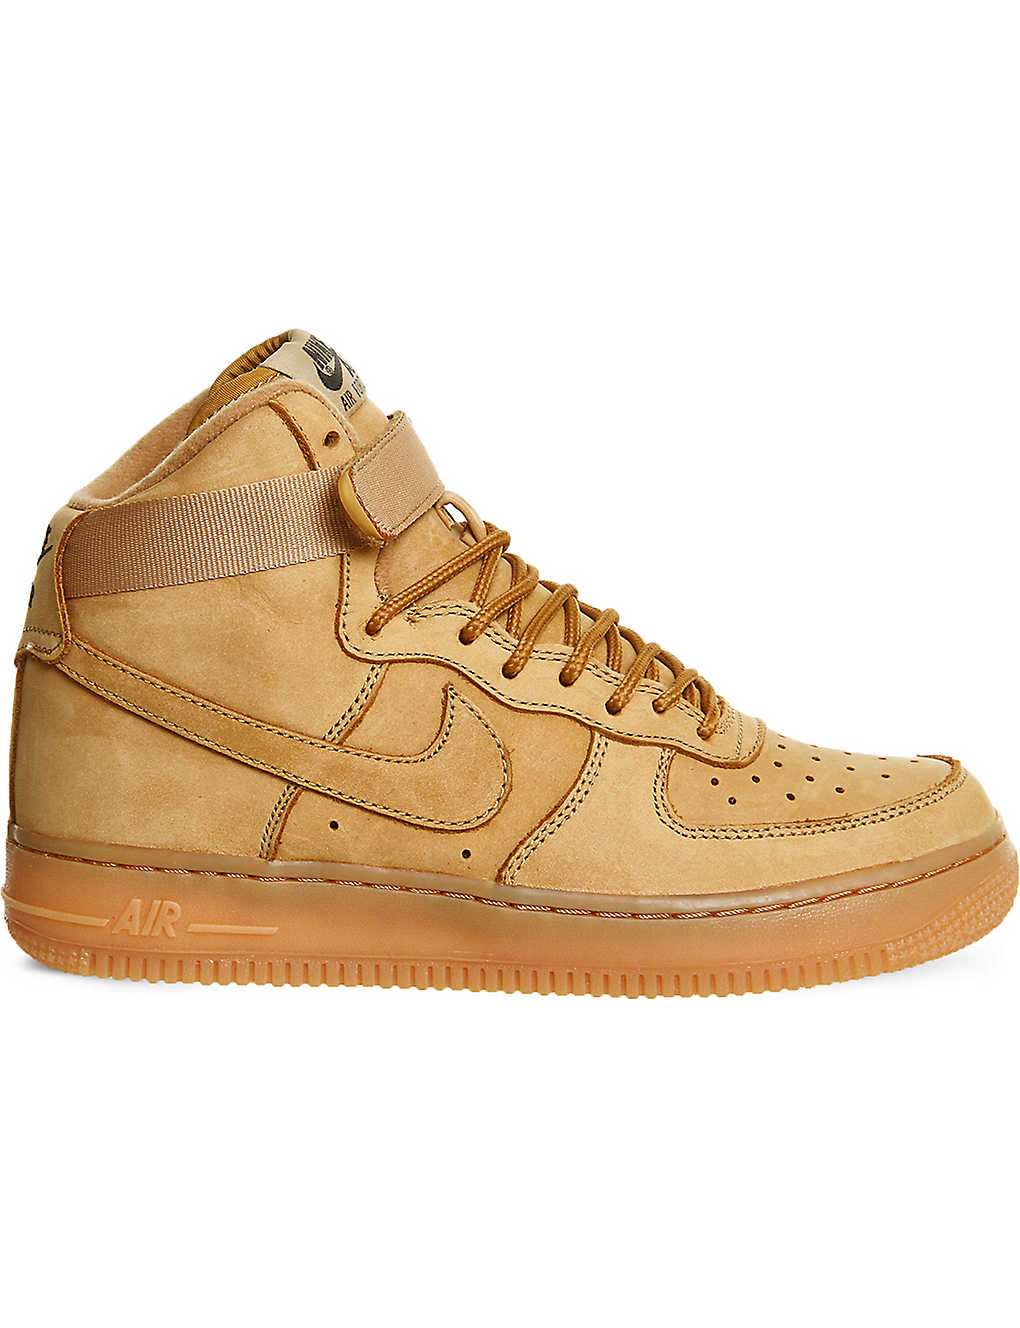 NIKE - Air Force 1 high-top leather trainers   Selfridges com